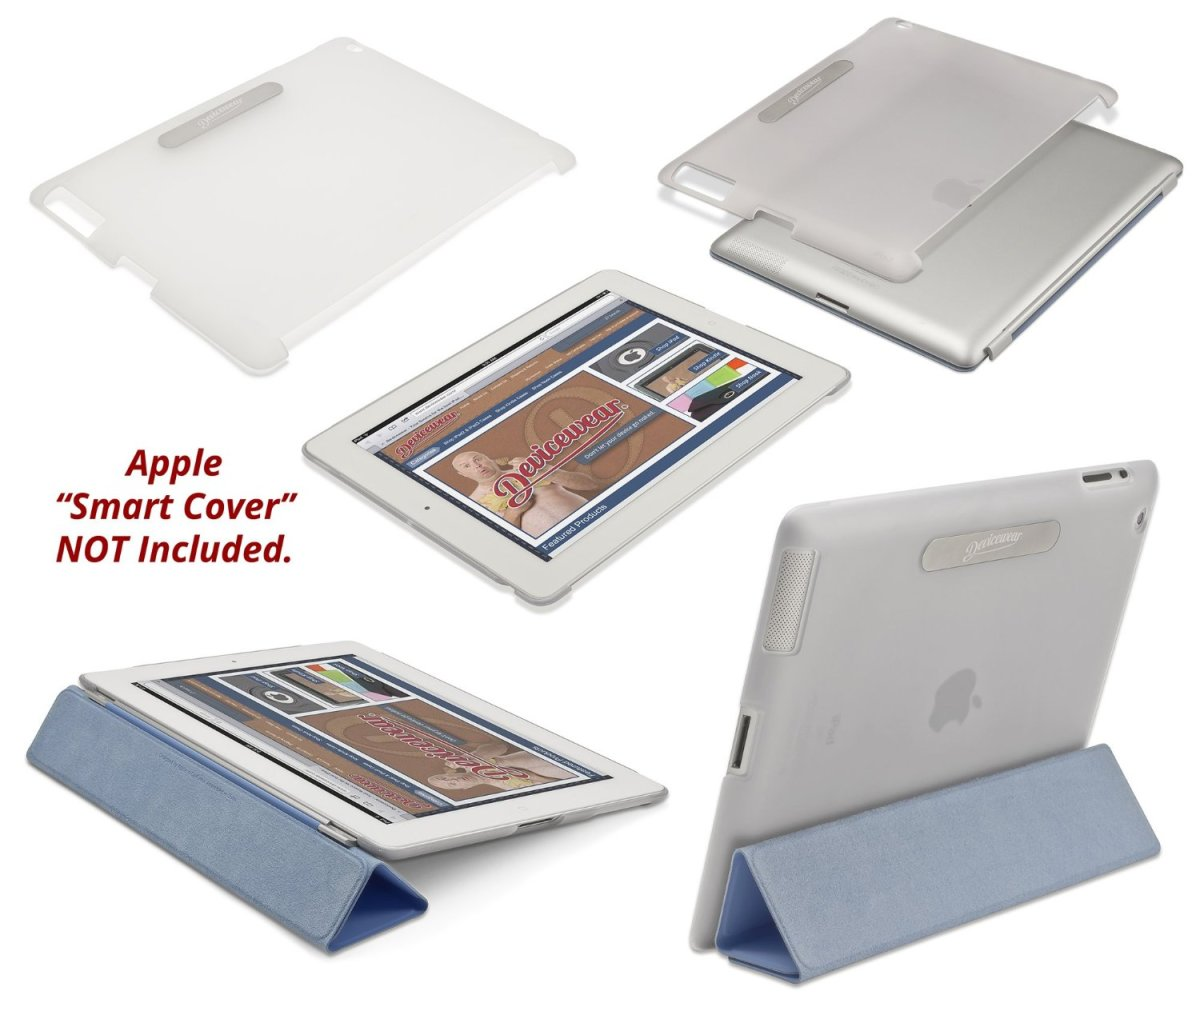 iPad 4 Back Cover Compatible with Smart Cover